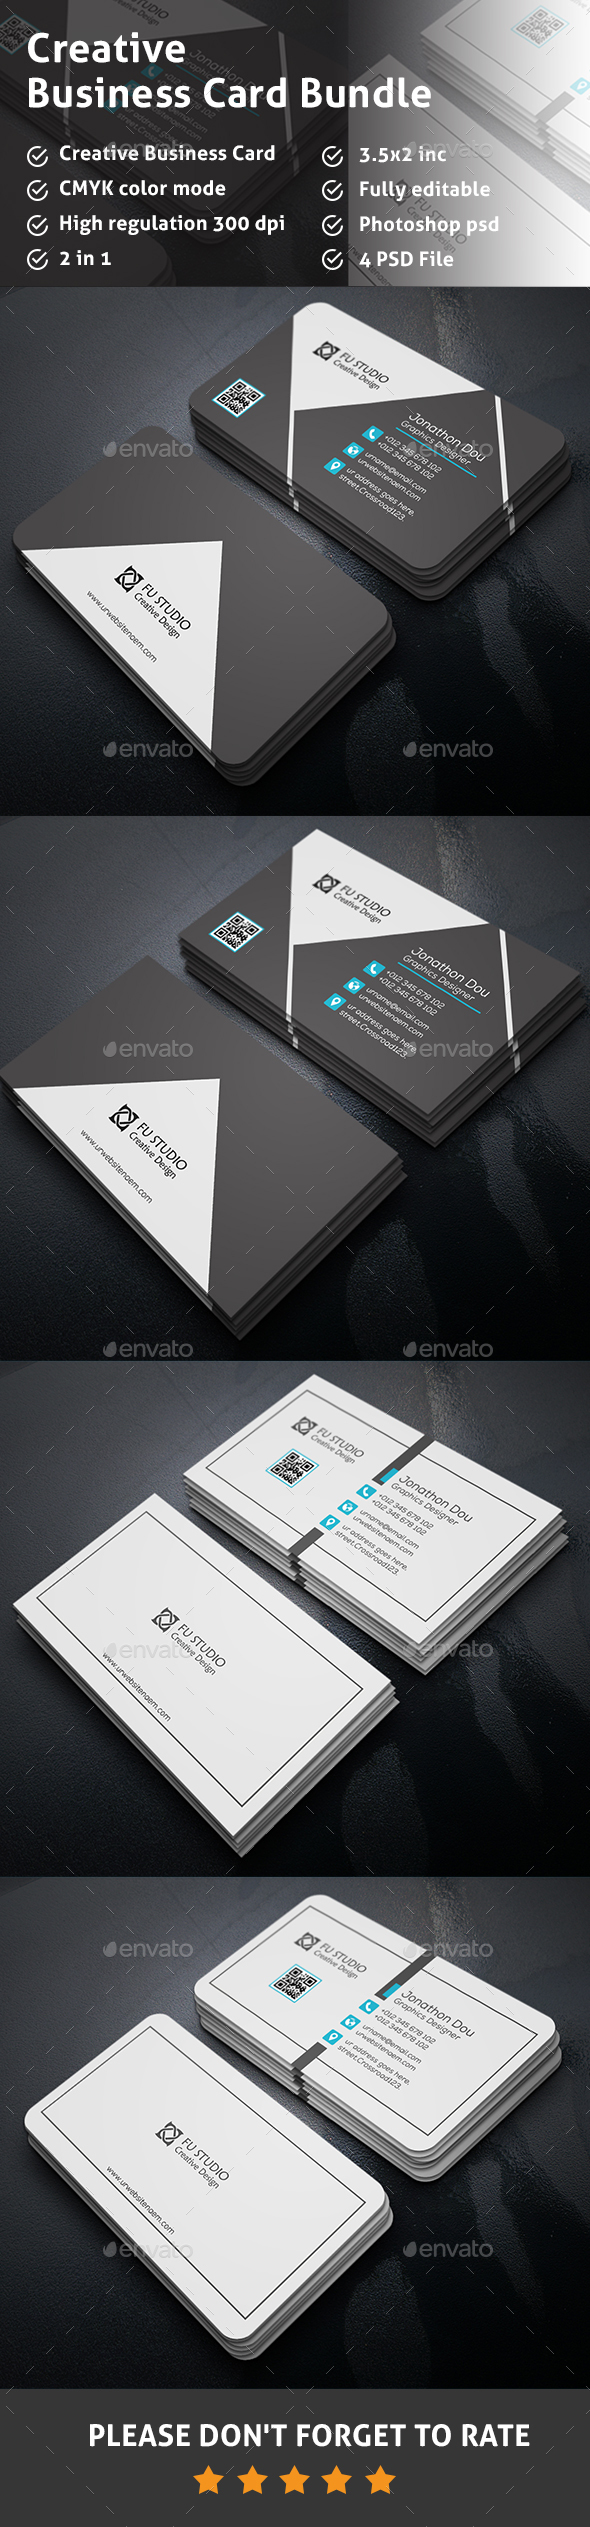 Business Card Bundle - Creative Business Cards